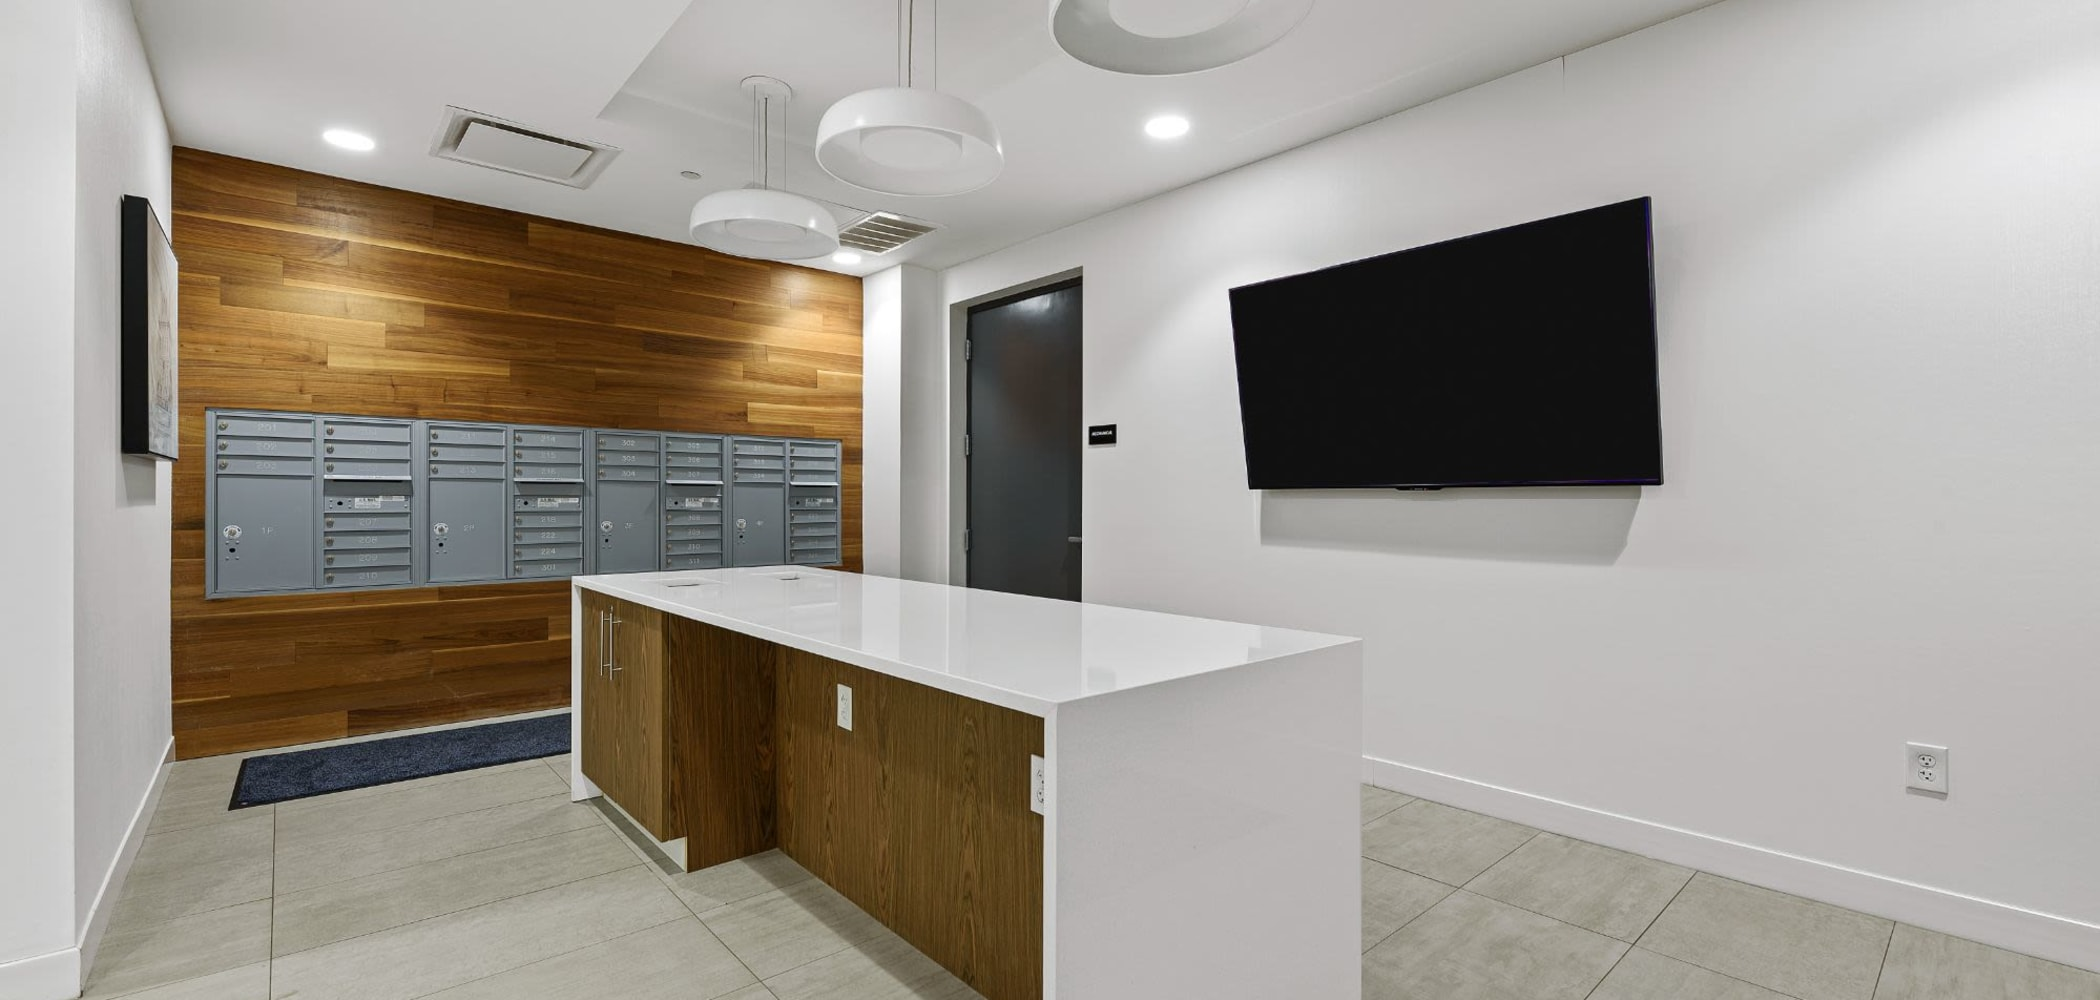 Mail lockers for residents at The View on Pavey Square in Columbus, Ohio